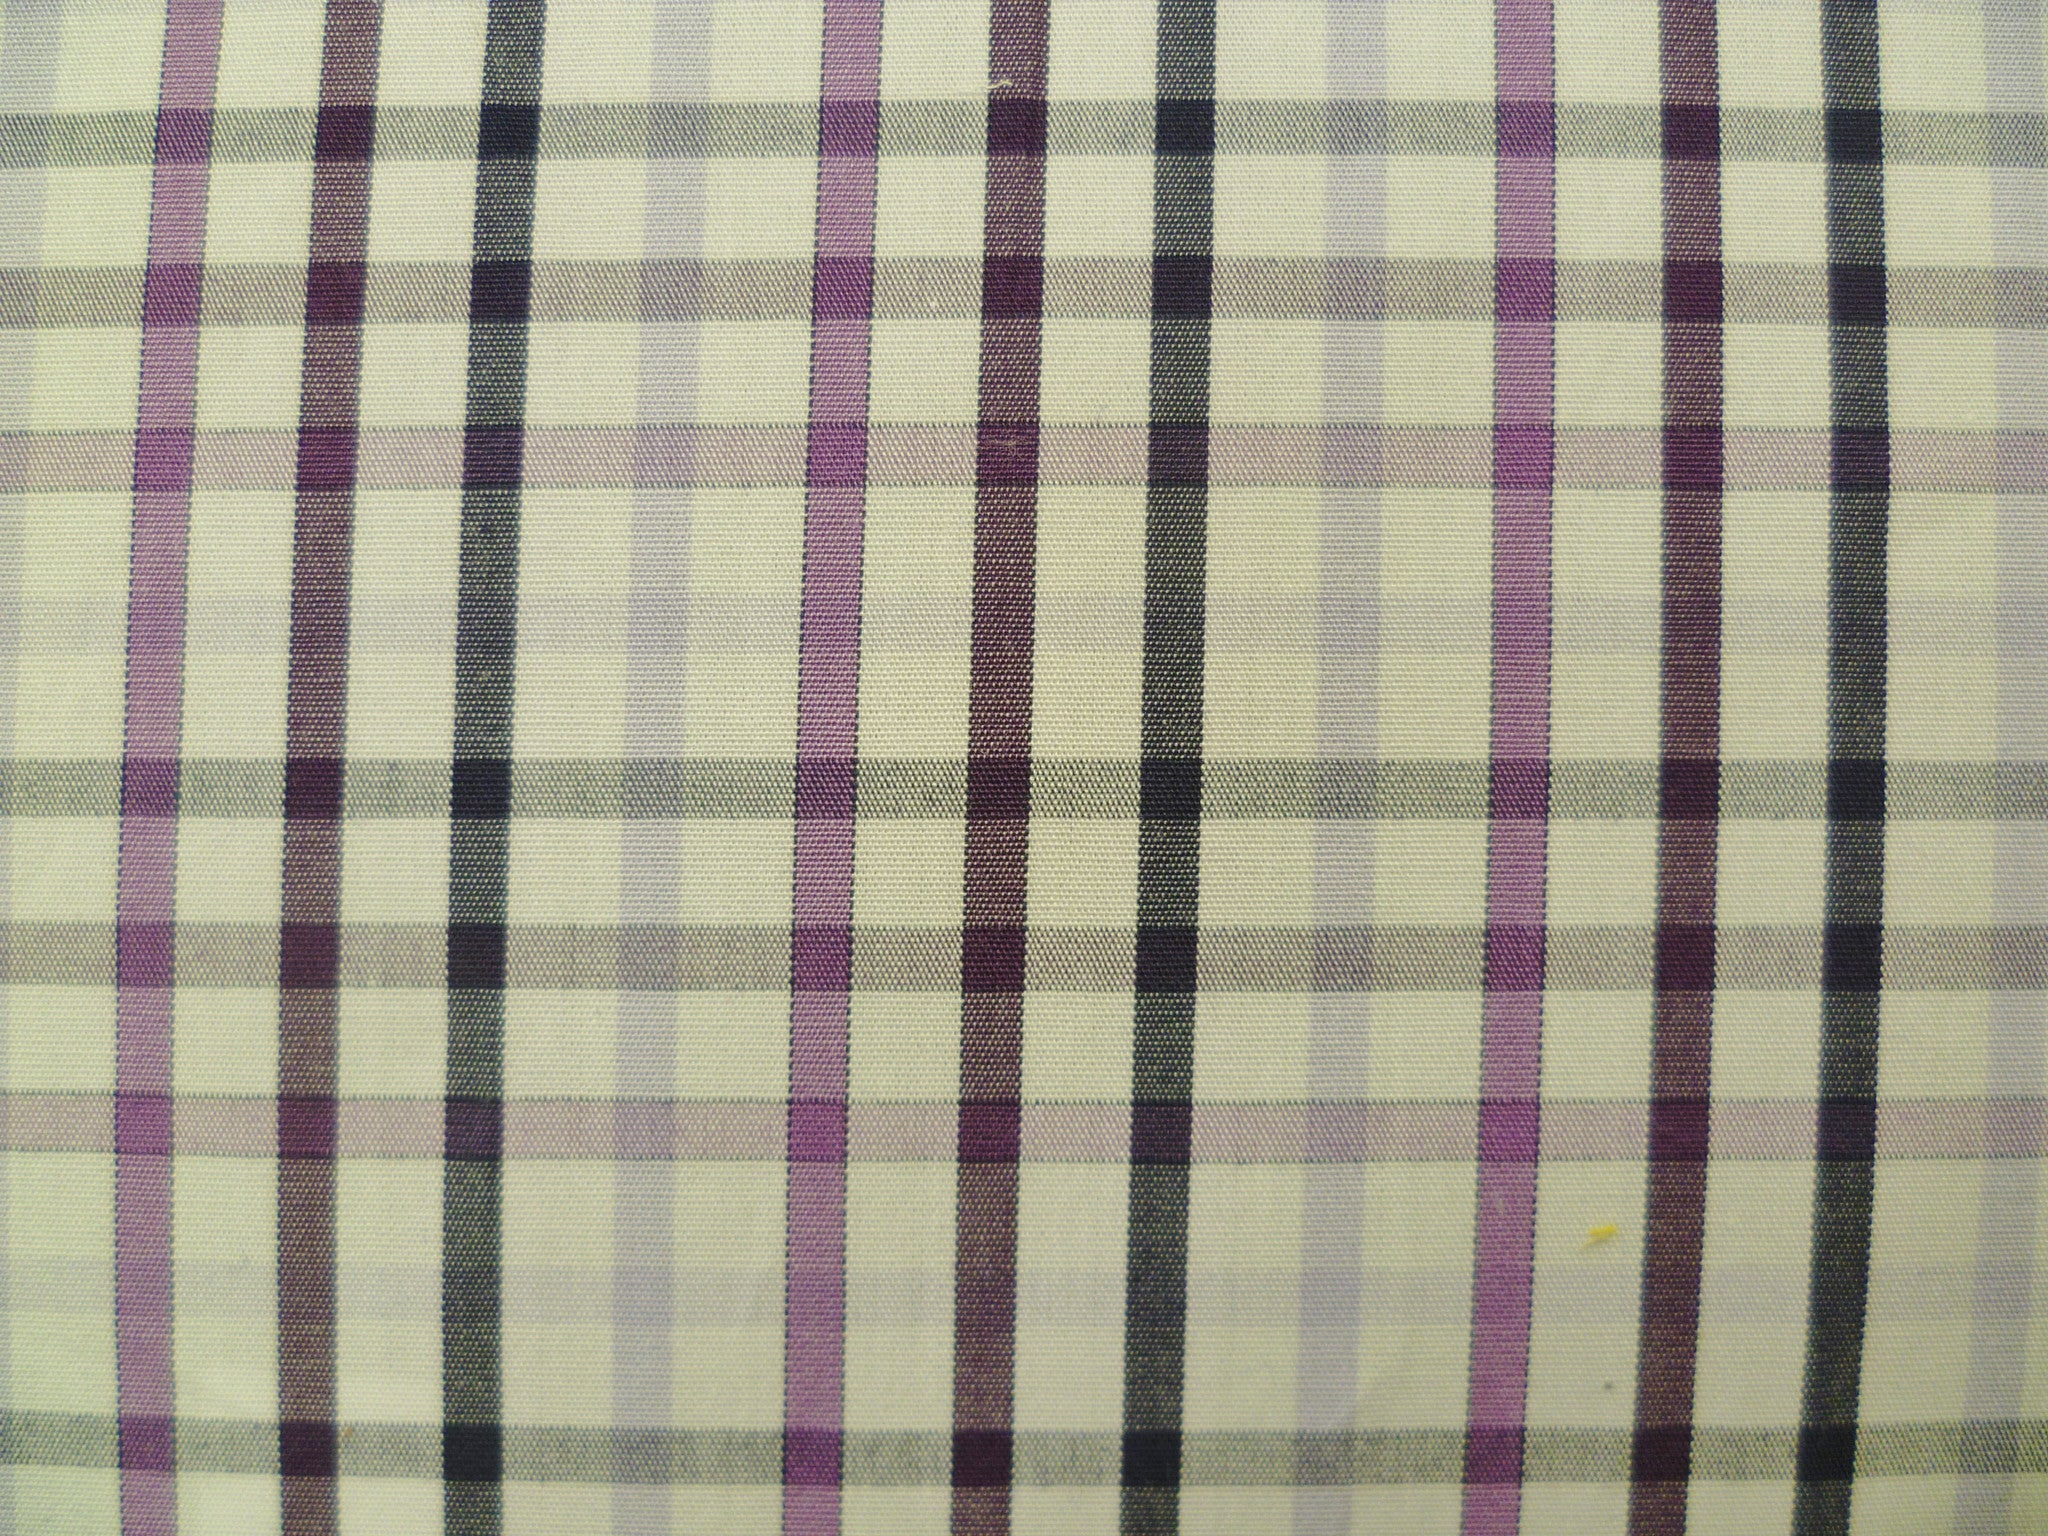 Plum, Lavender, Dark Plum and White and White Checked Cotton